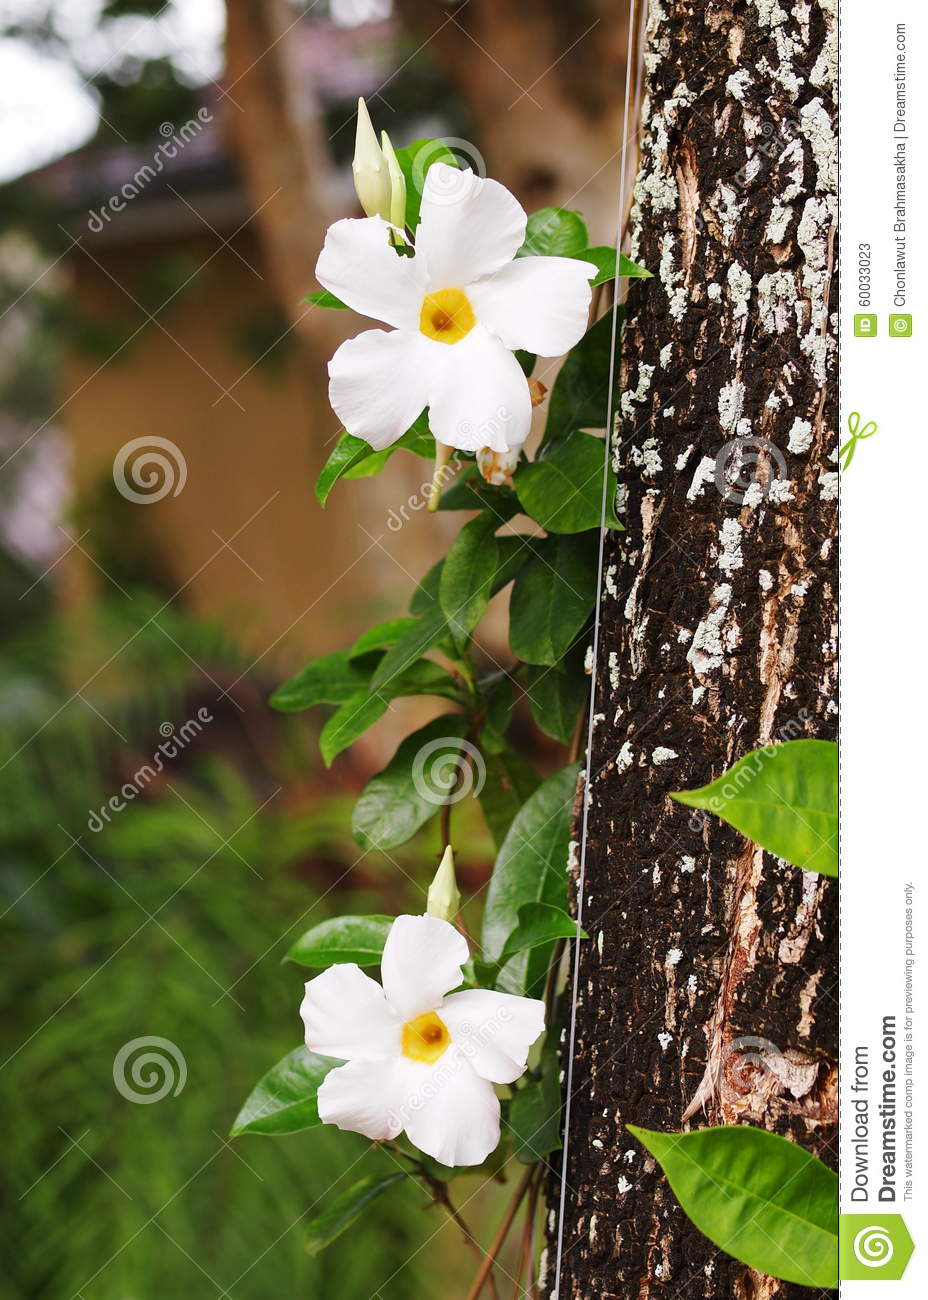 White Flower Stock Image Image Of Beautiful Clover 60033023